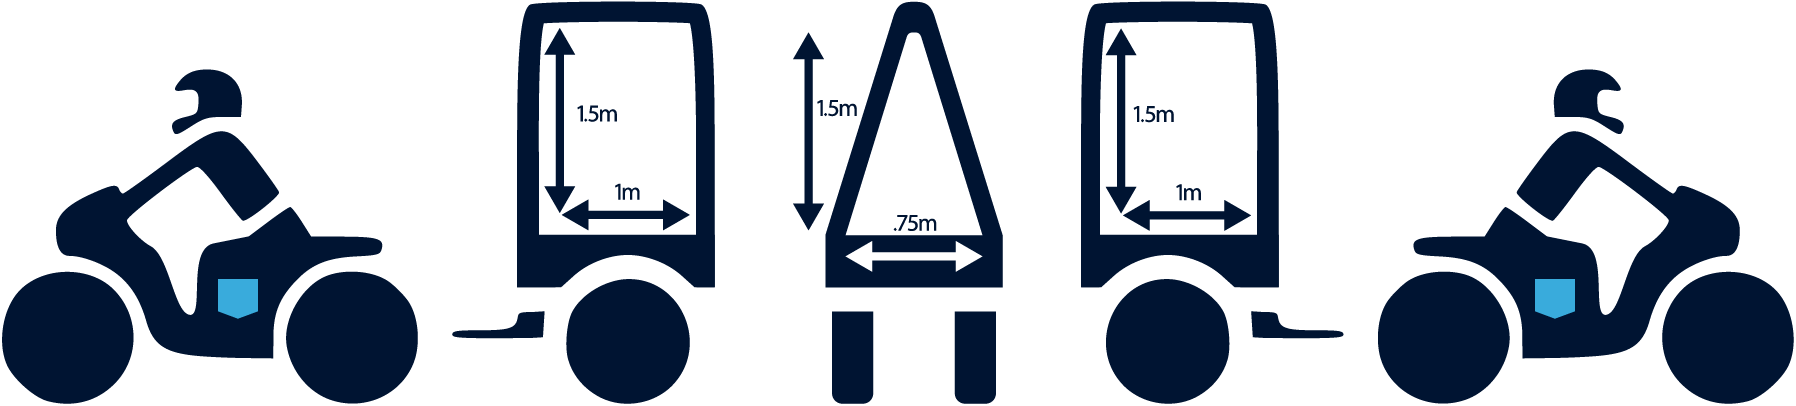 Dimensions of Scooter Billboards for Scooter Advertising Sydney